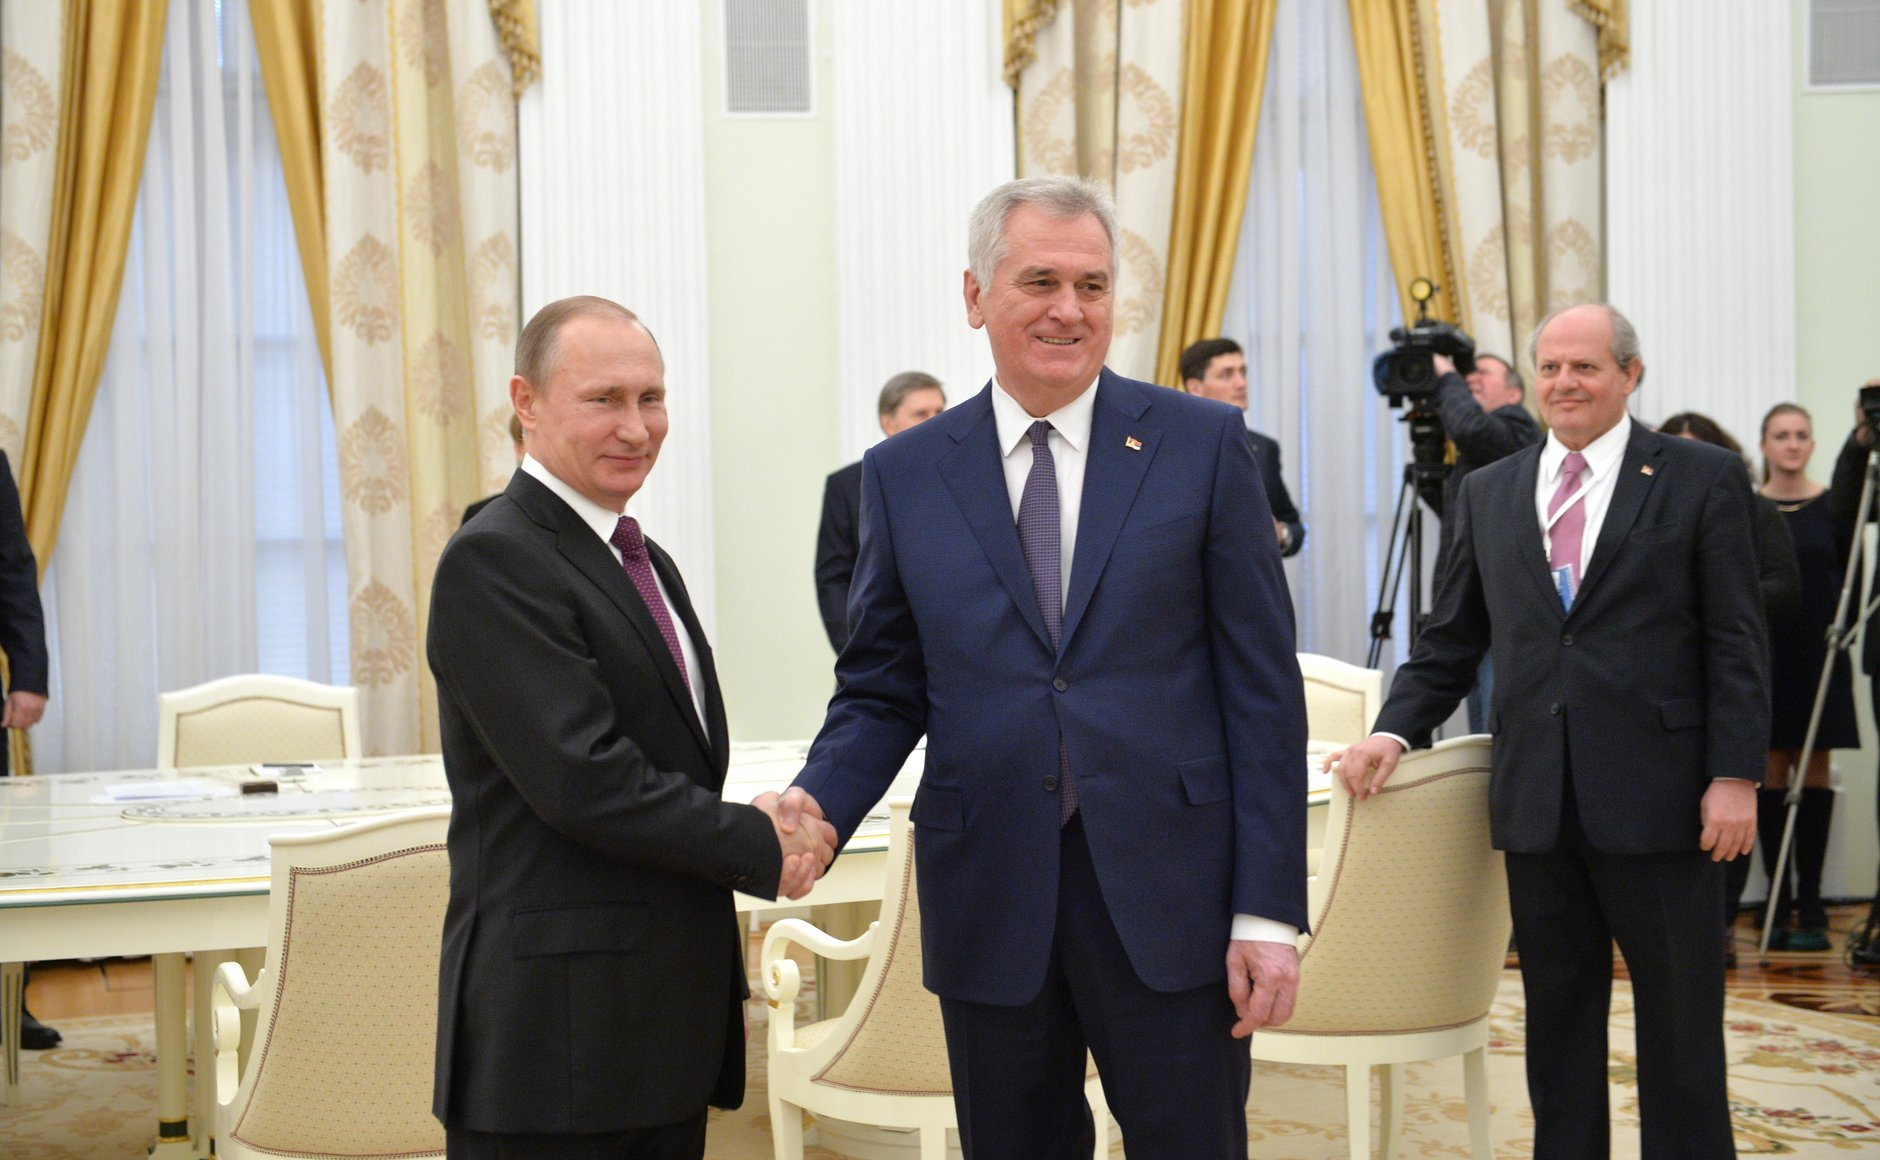 Serbian President Tomislav Nikolic met with Russian President Vladimir Putin in Moscow, March 10, 2016.